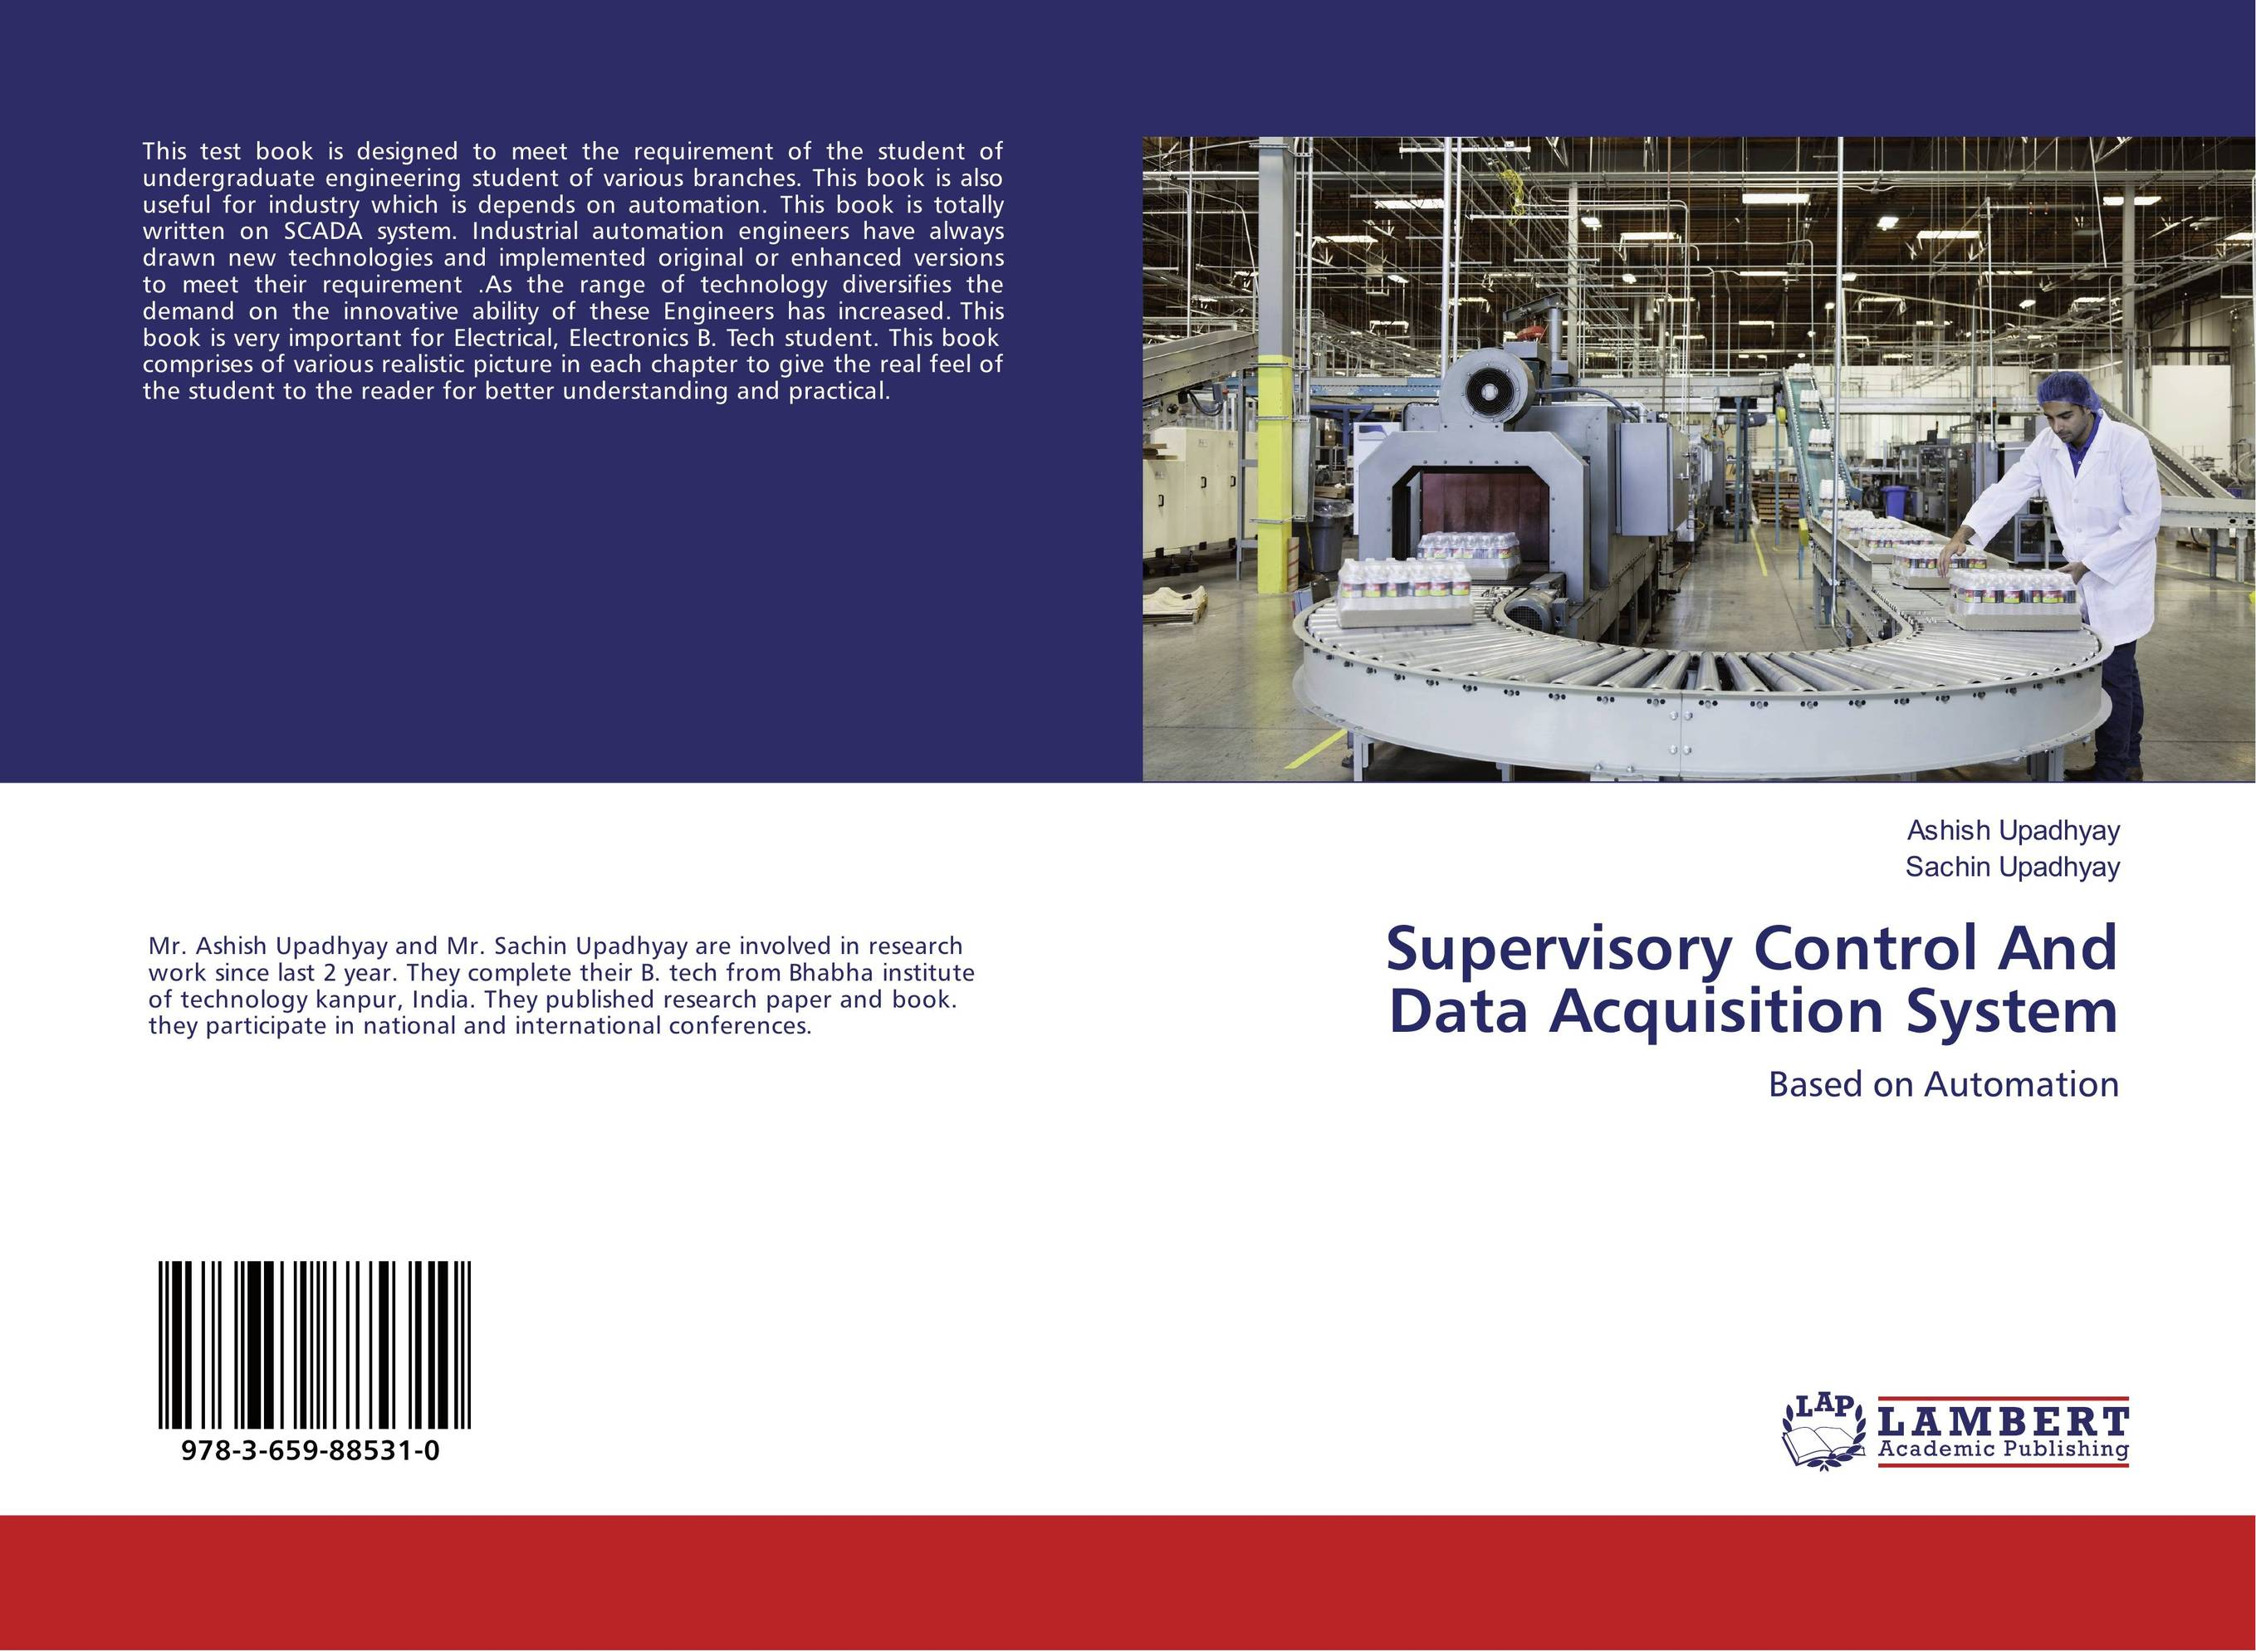 Supervisory Control And Data Acquisition System